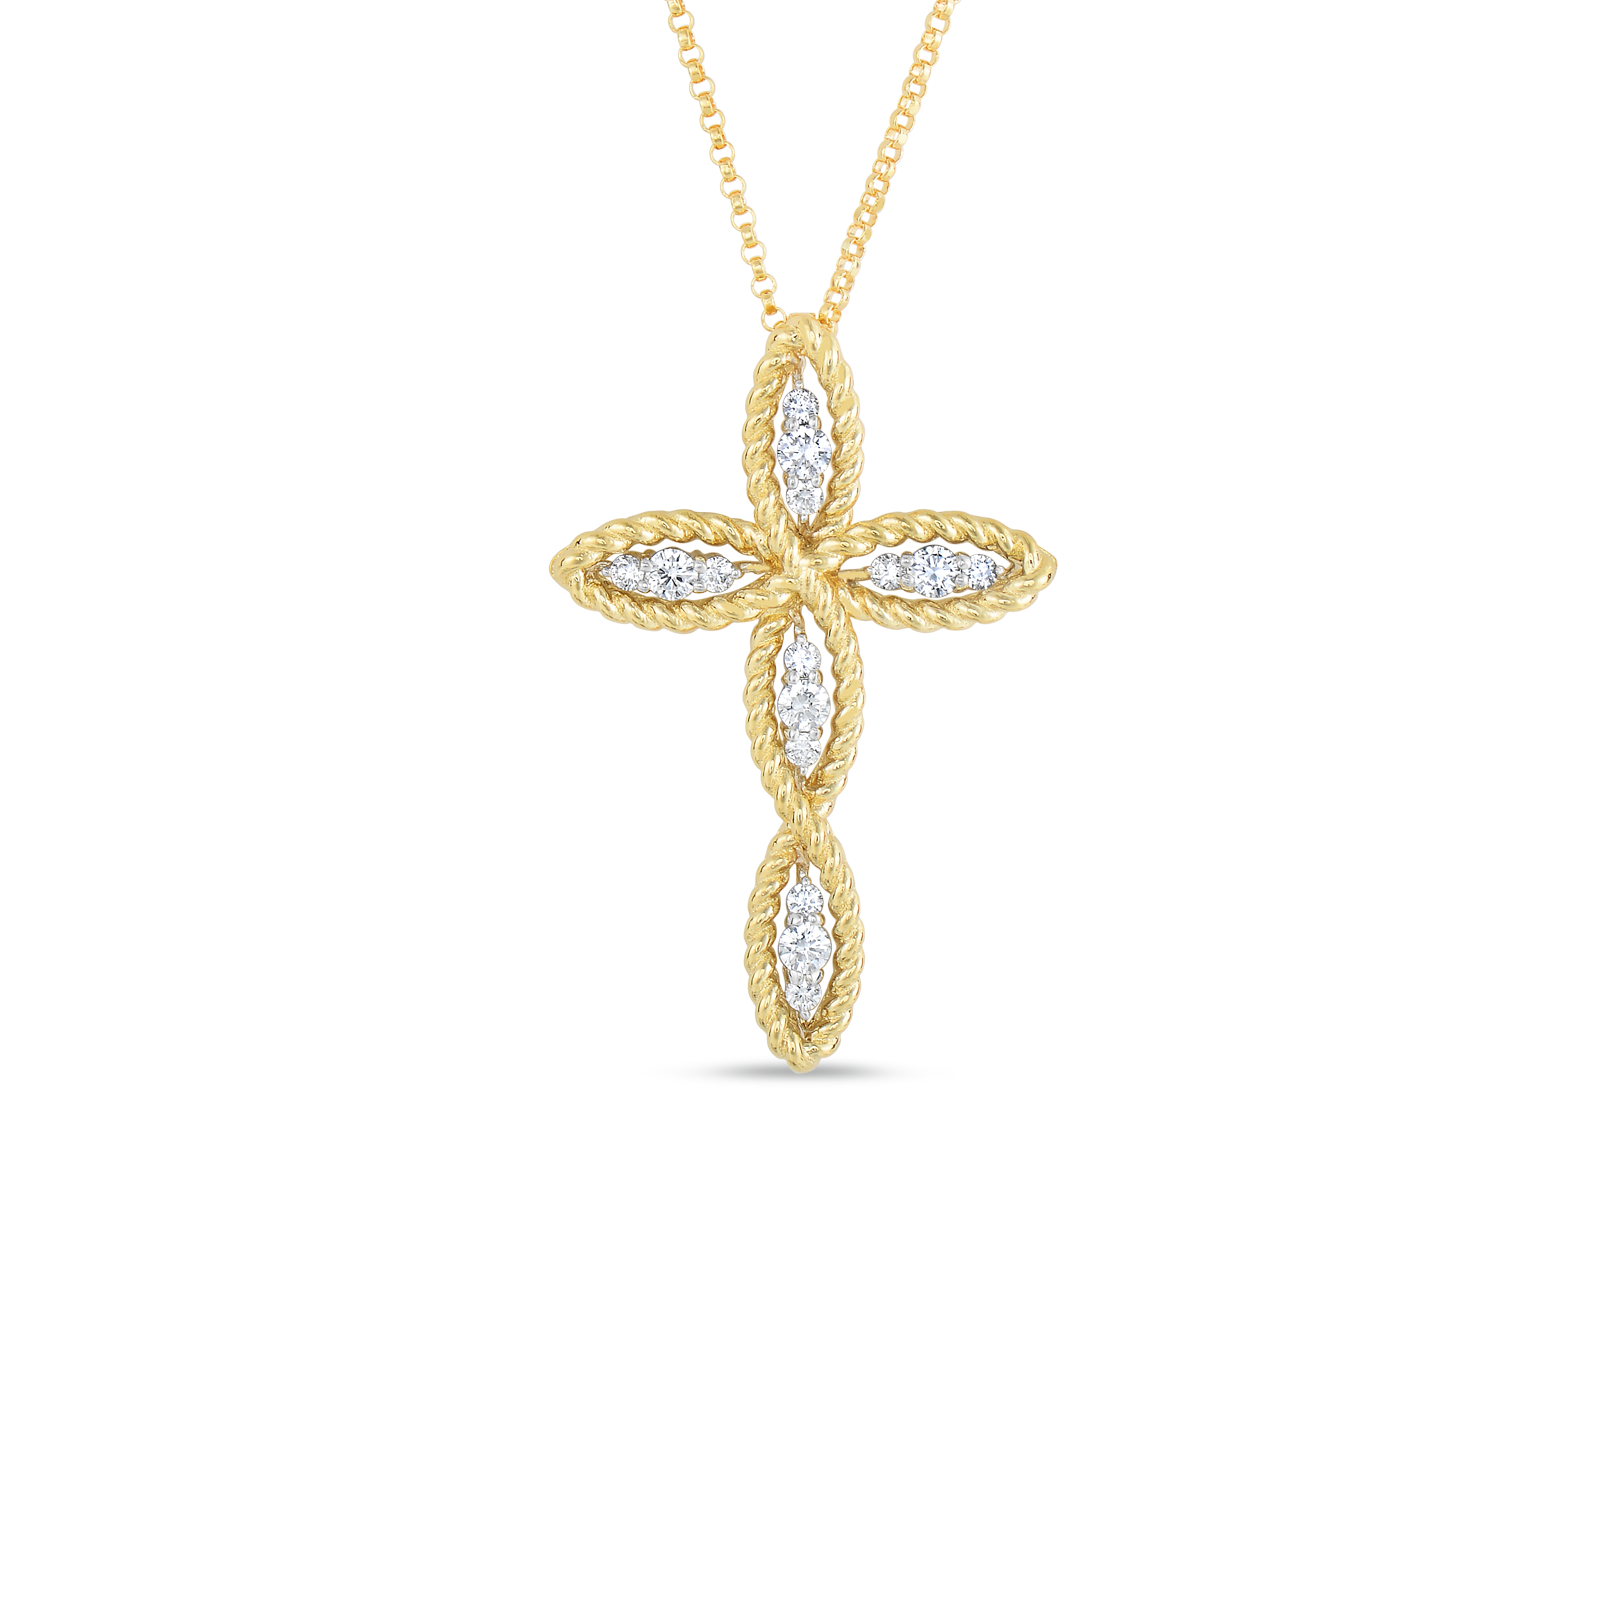 Buy gold cross pendant with diamonds by roberto coin roberto coin barocco 18k yellow gold and 18k audiocablefo